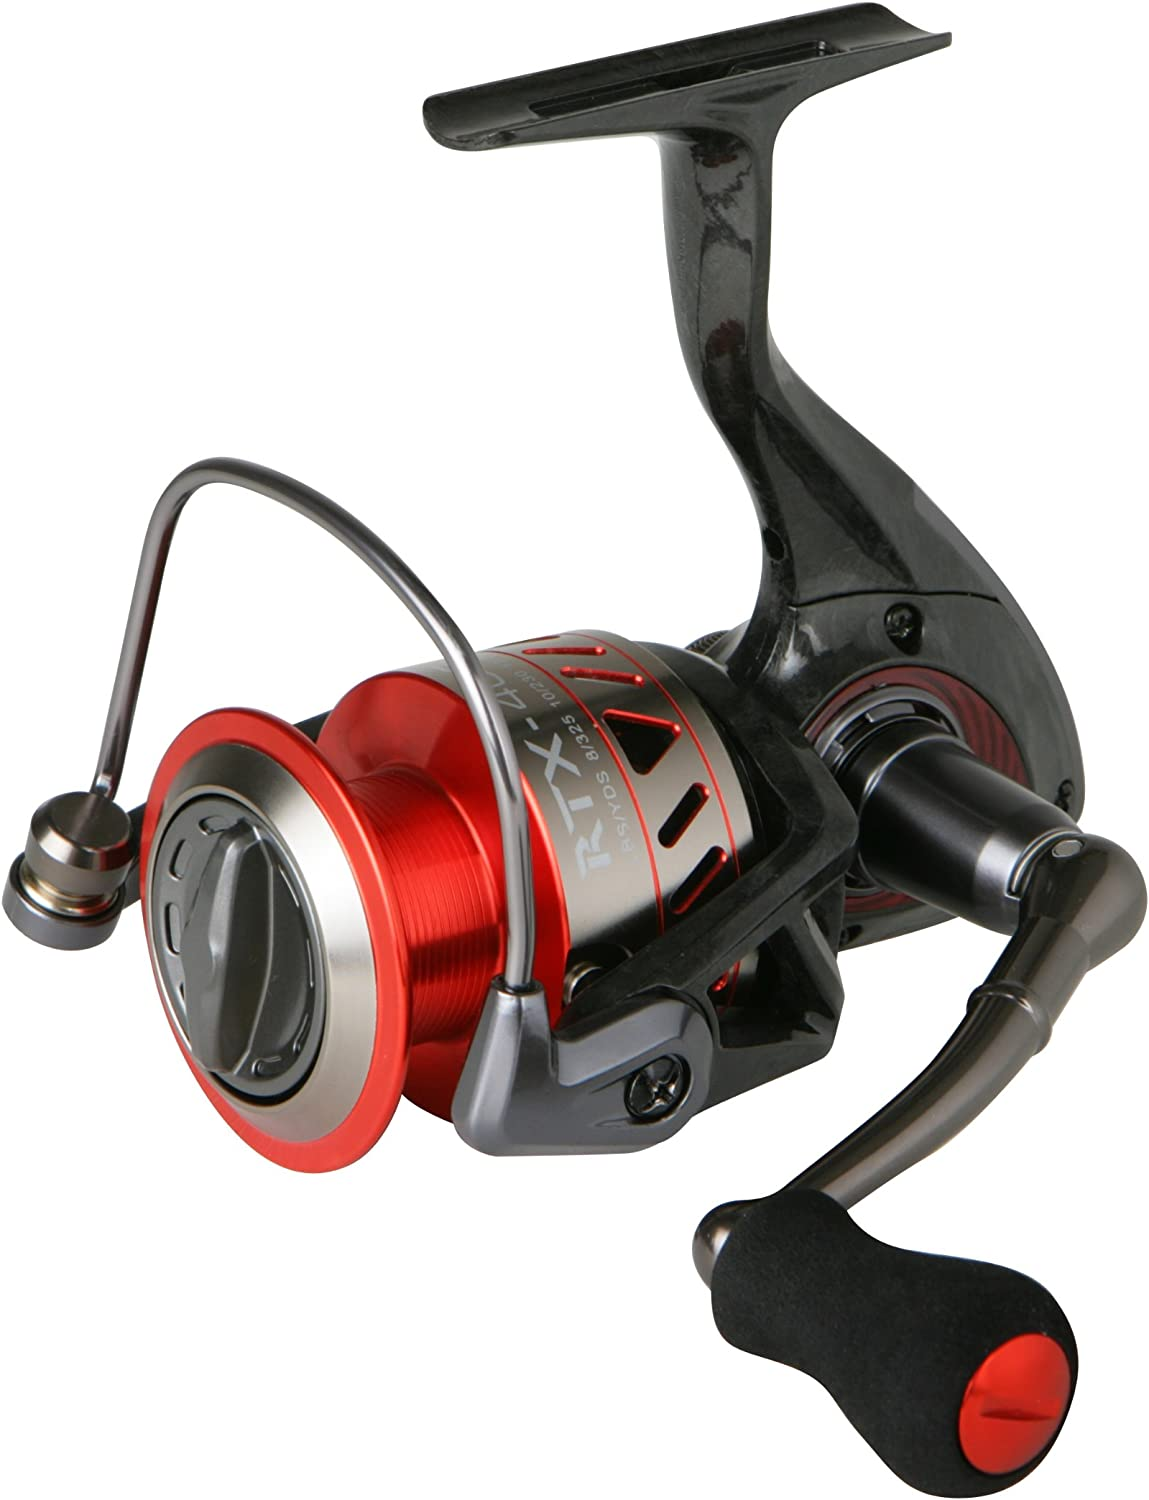 Okuma RTX Light Weight Spinning Reel